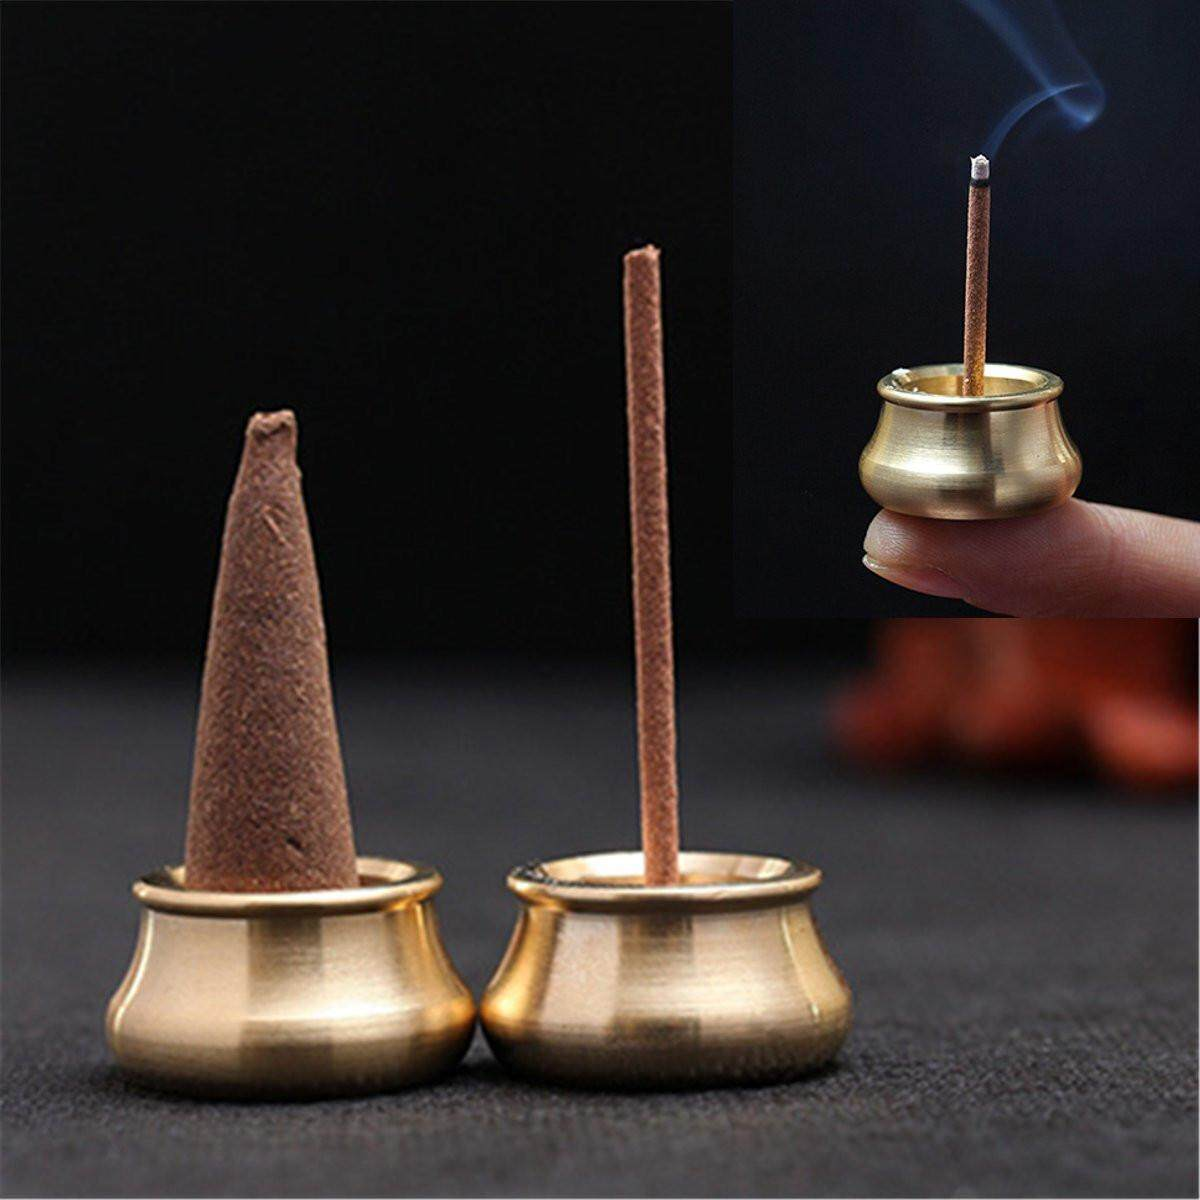 Stick Incense Burner Brass Bowl Holder Cone Plate Censer Tower Home Decoration By Glimmer.